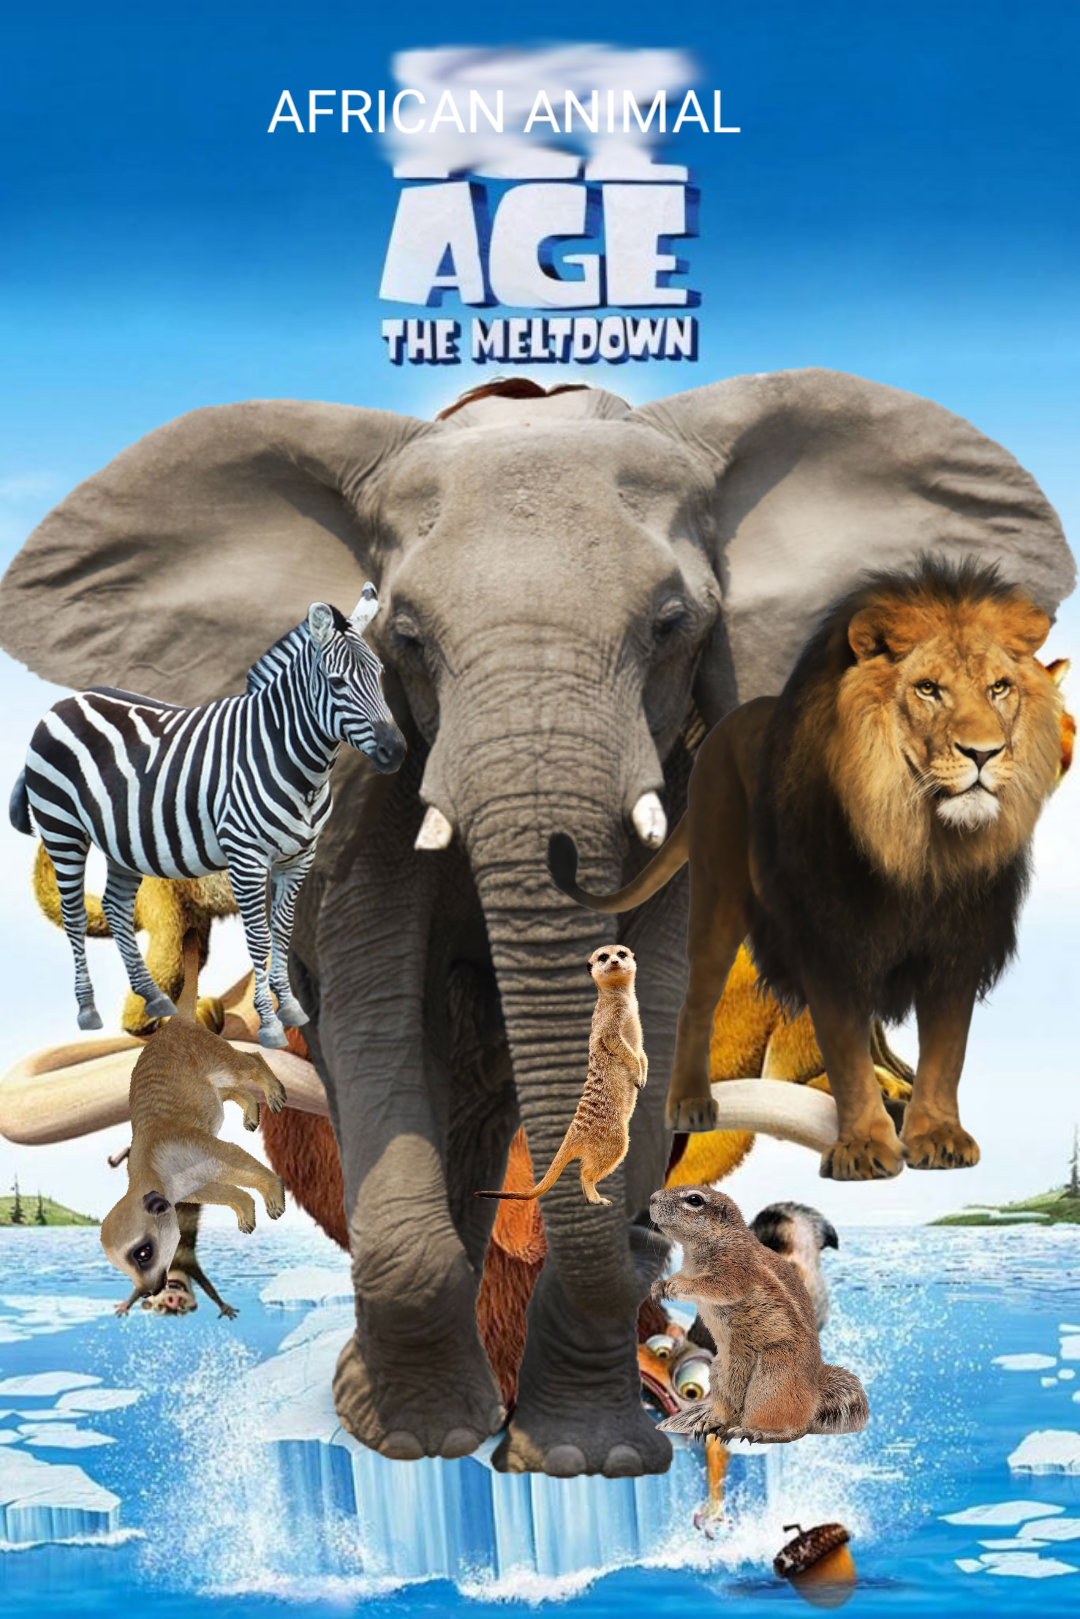 African Animal Age 2: The Meltdown